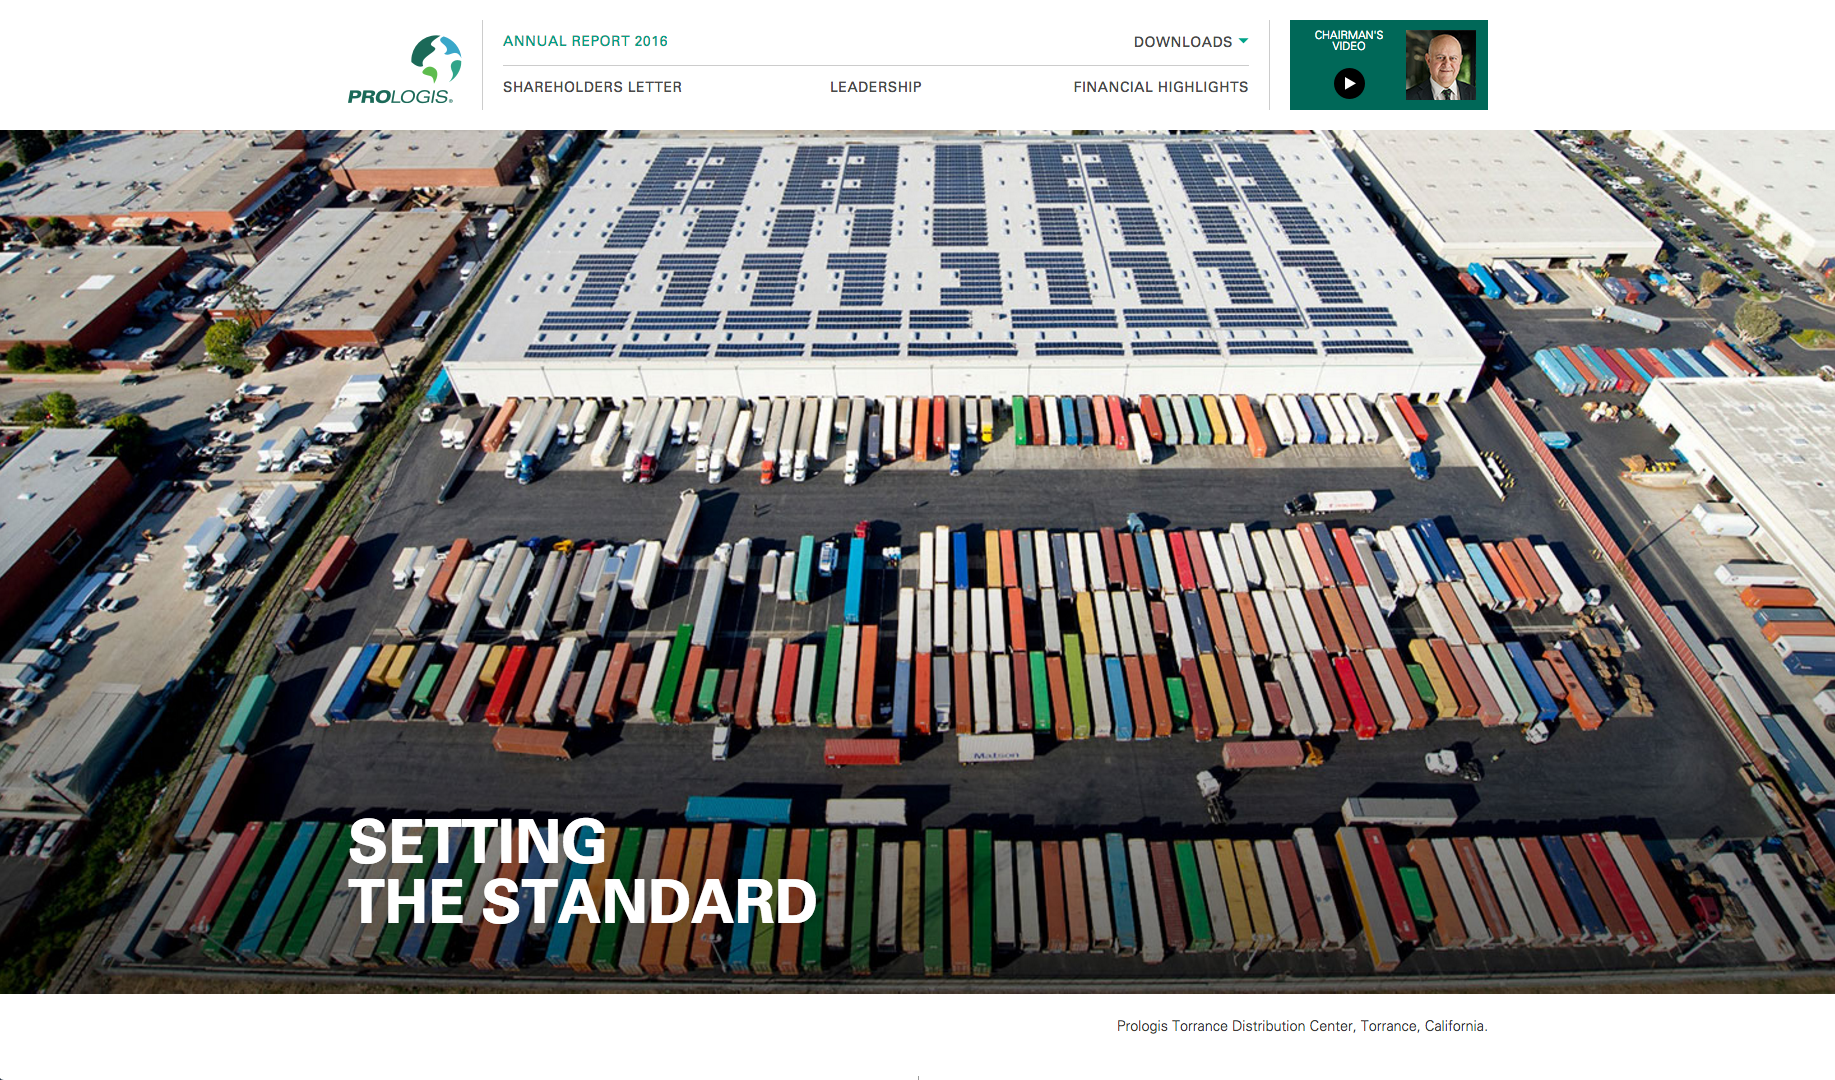 2016 Prologis Annual Report